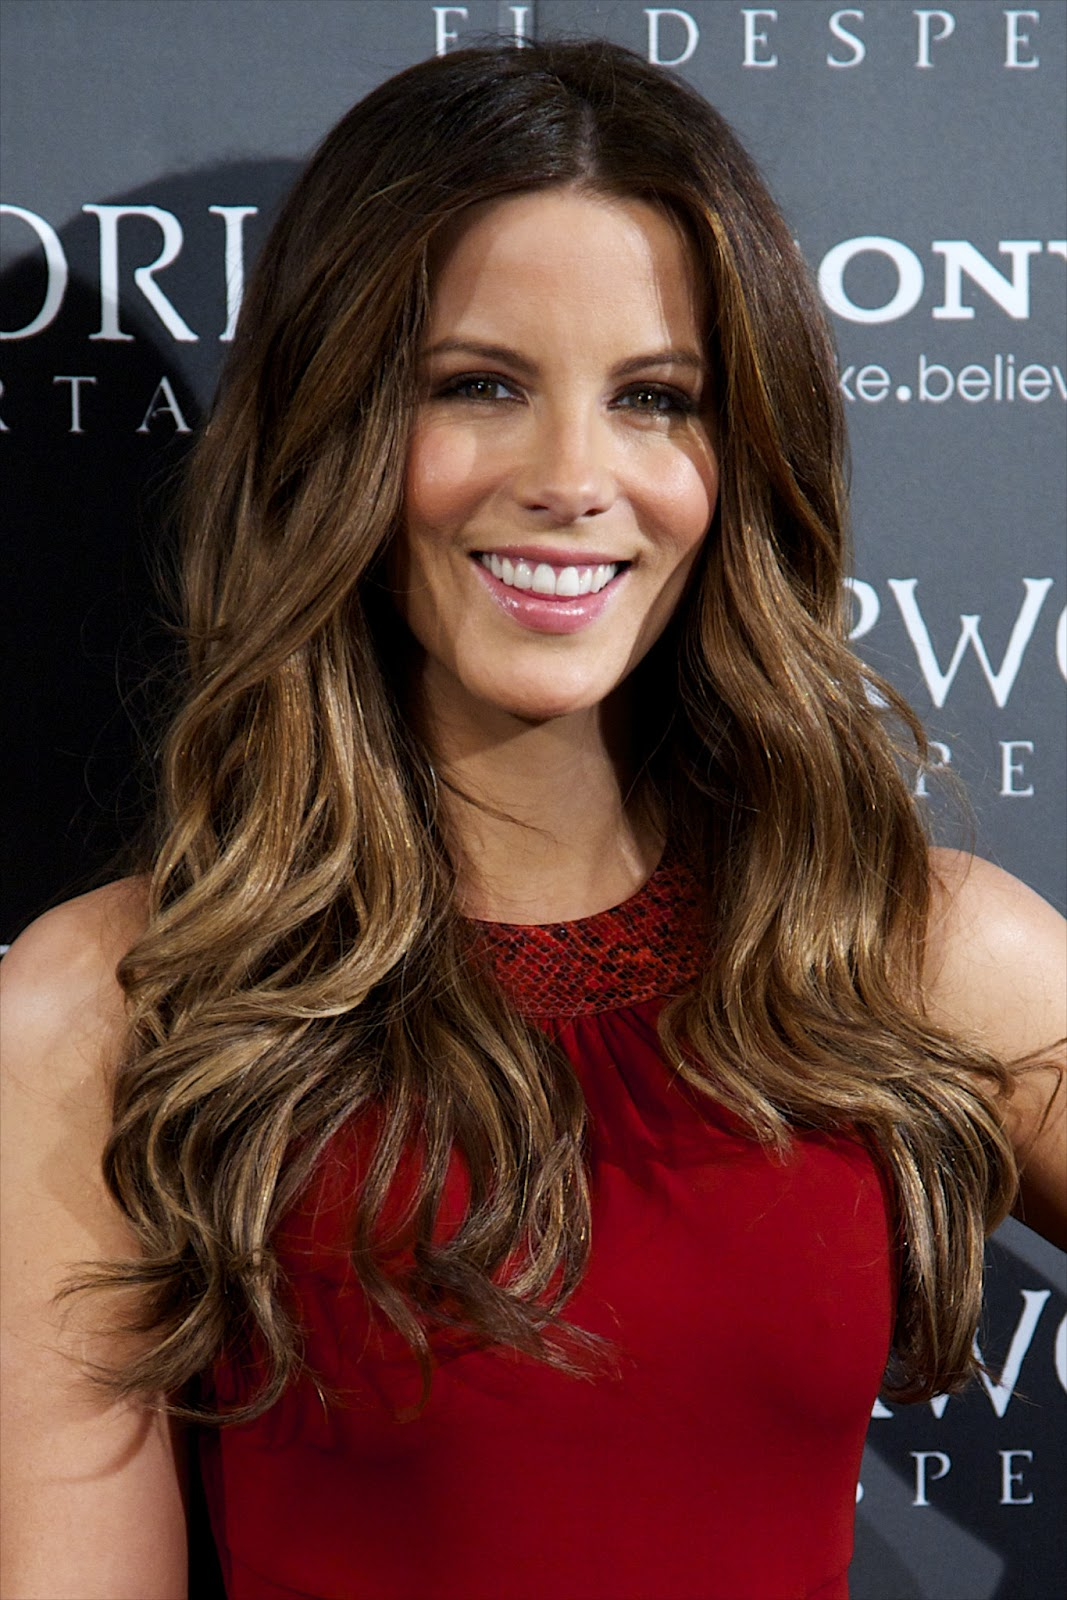 Celebrity Pics Anna Kendrick: Celebrity Pics: Kate Beckinsale